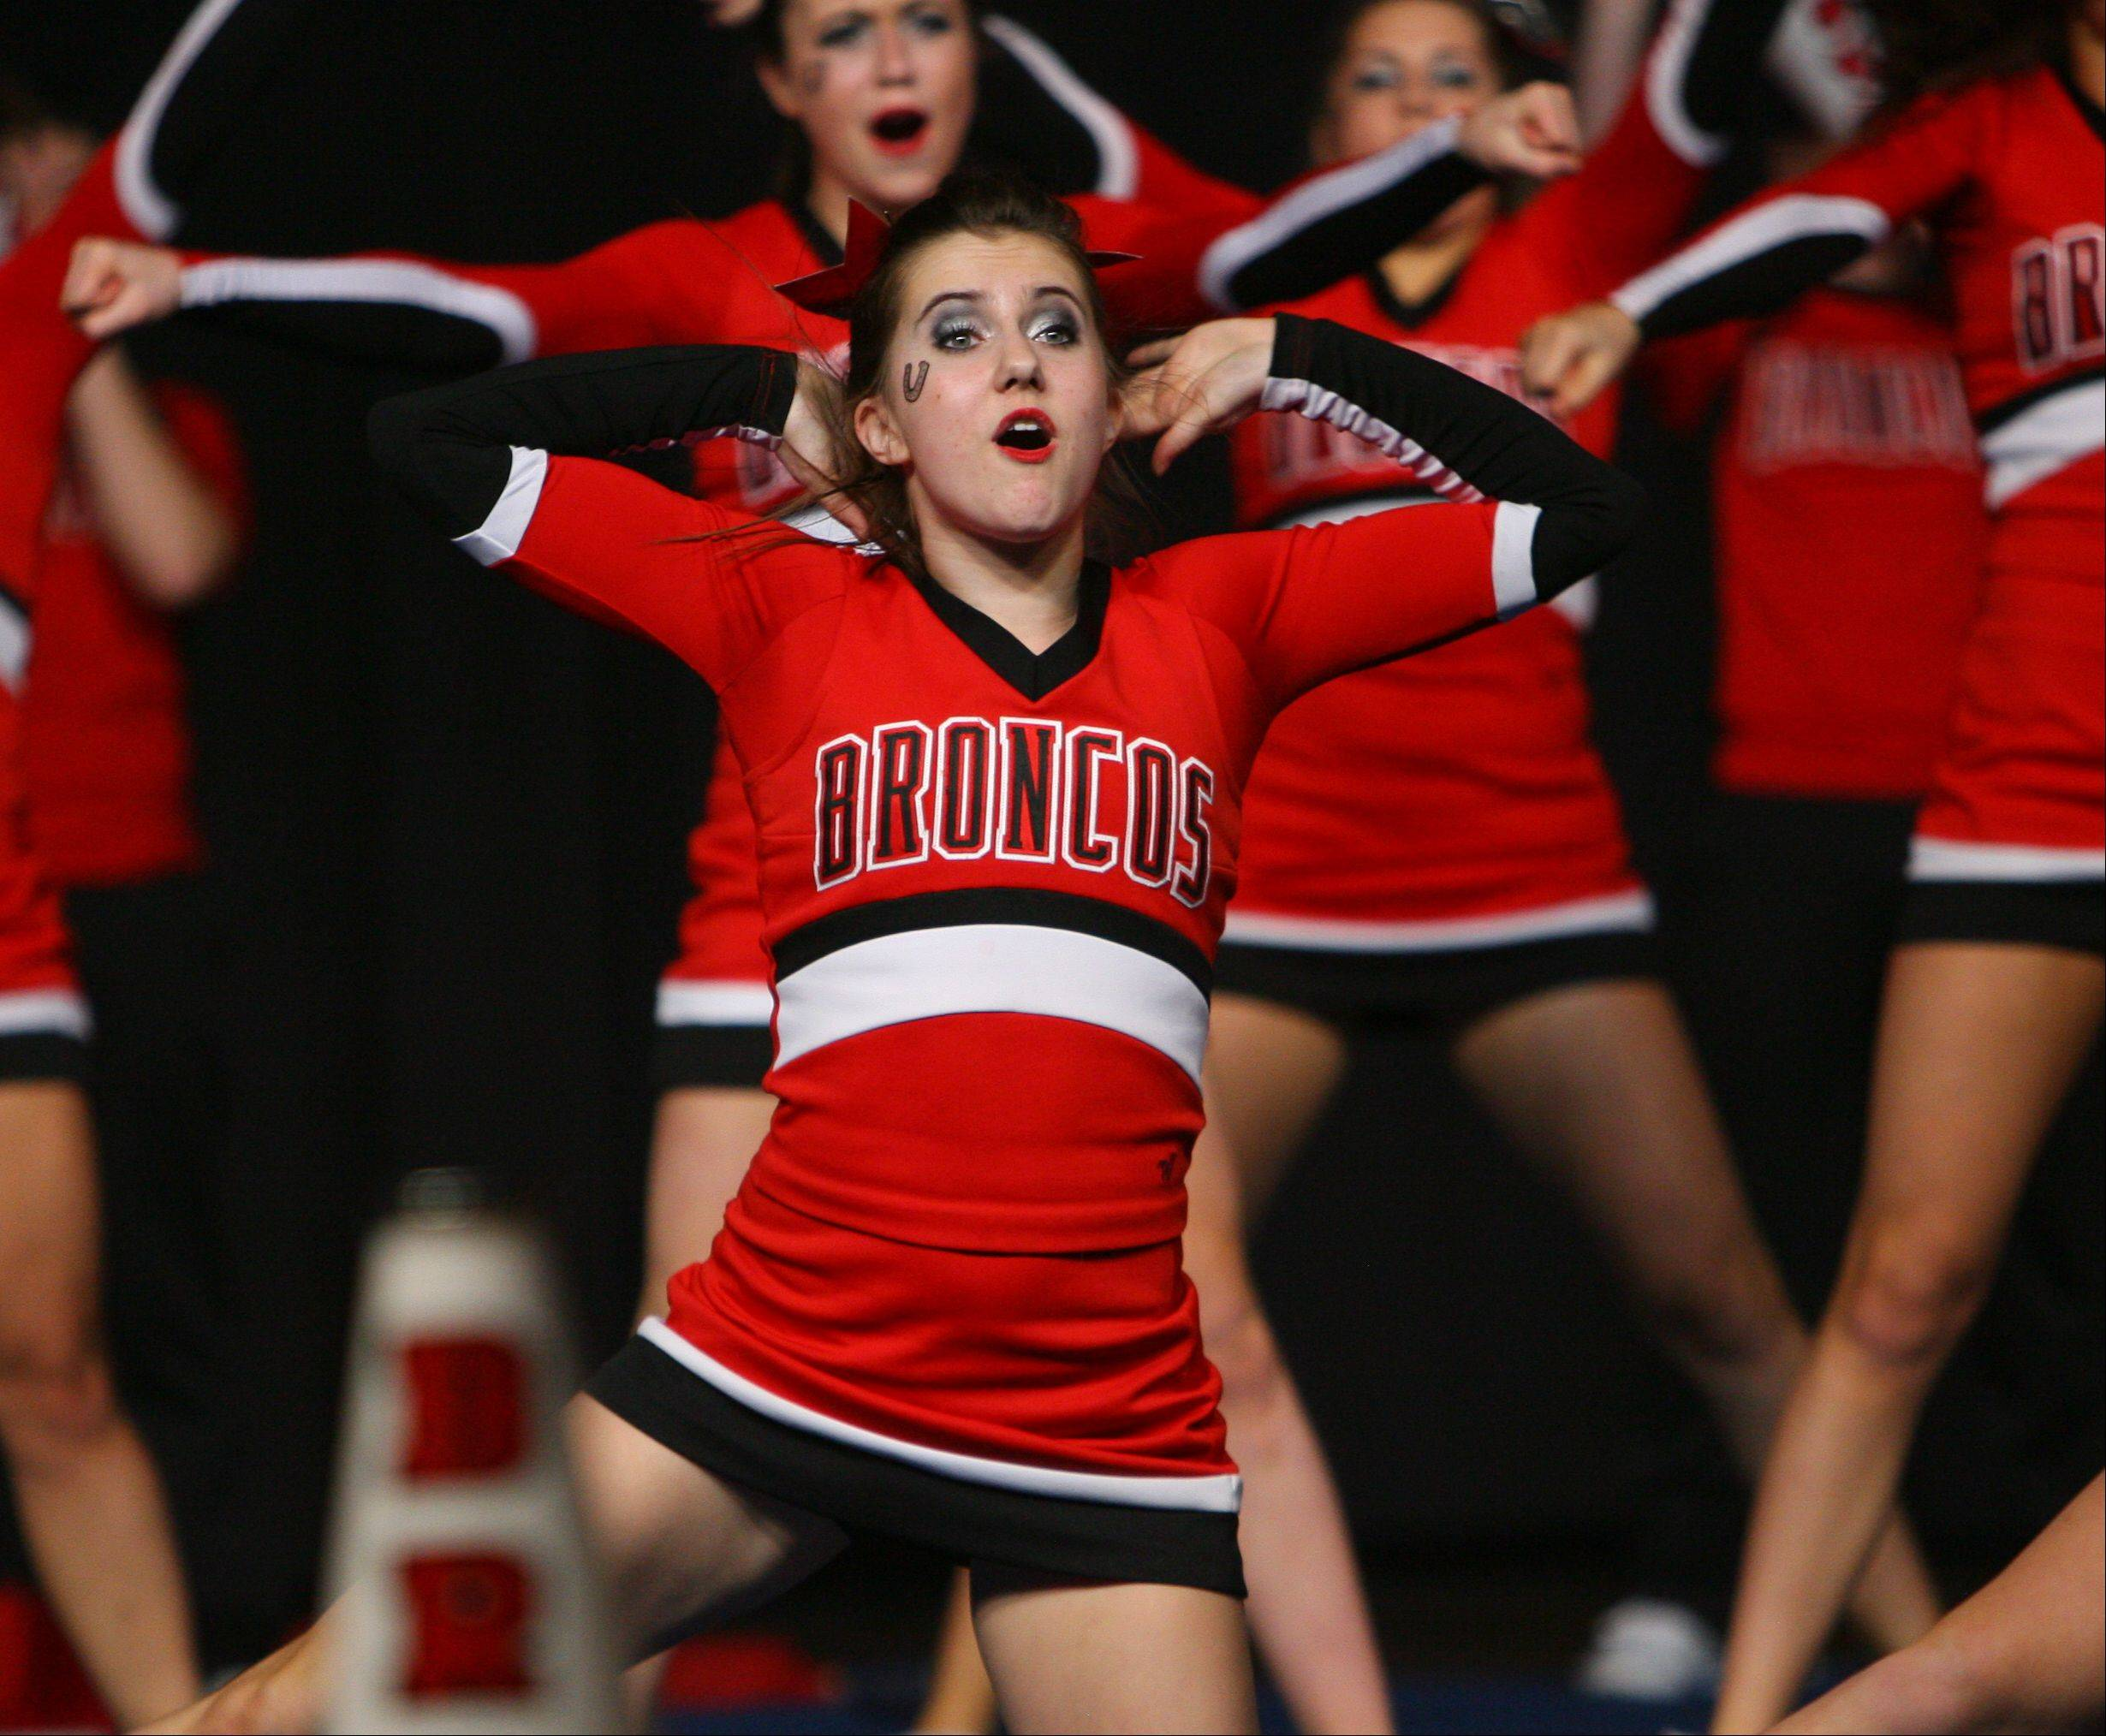 Barrington High School competes in the Competitive Cheerleading prelims on Friday at the U.S. Cellular Coliseum in Bloomington.